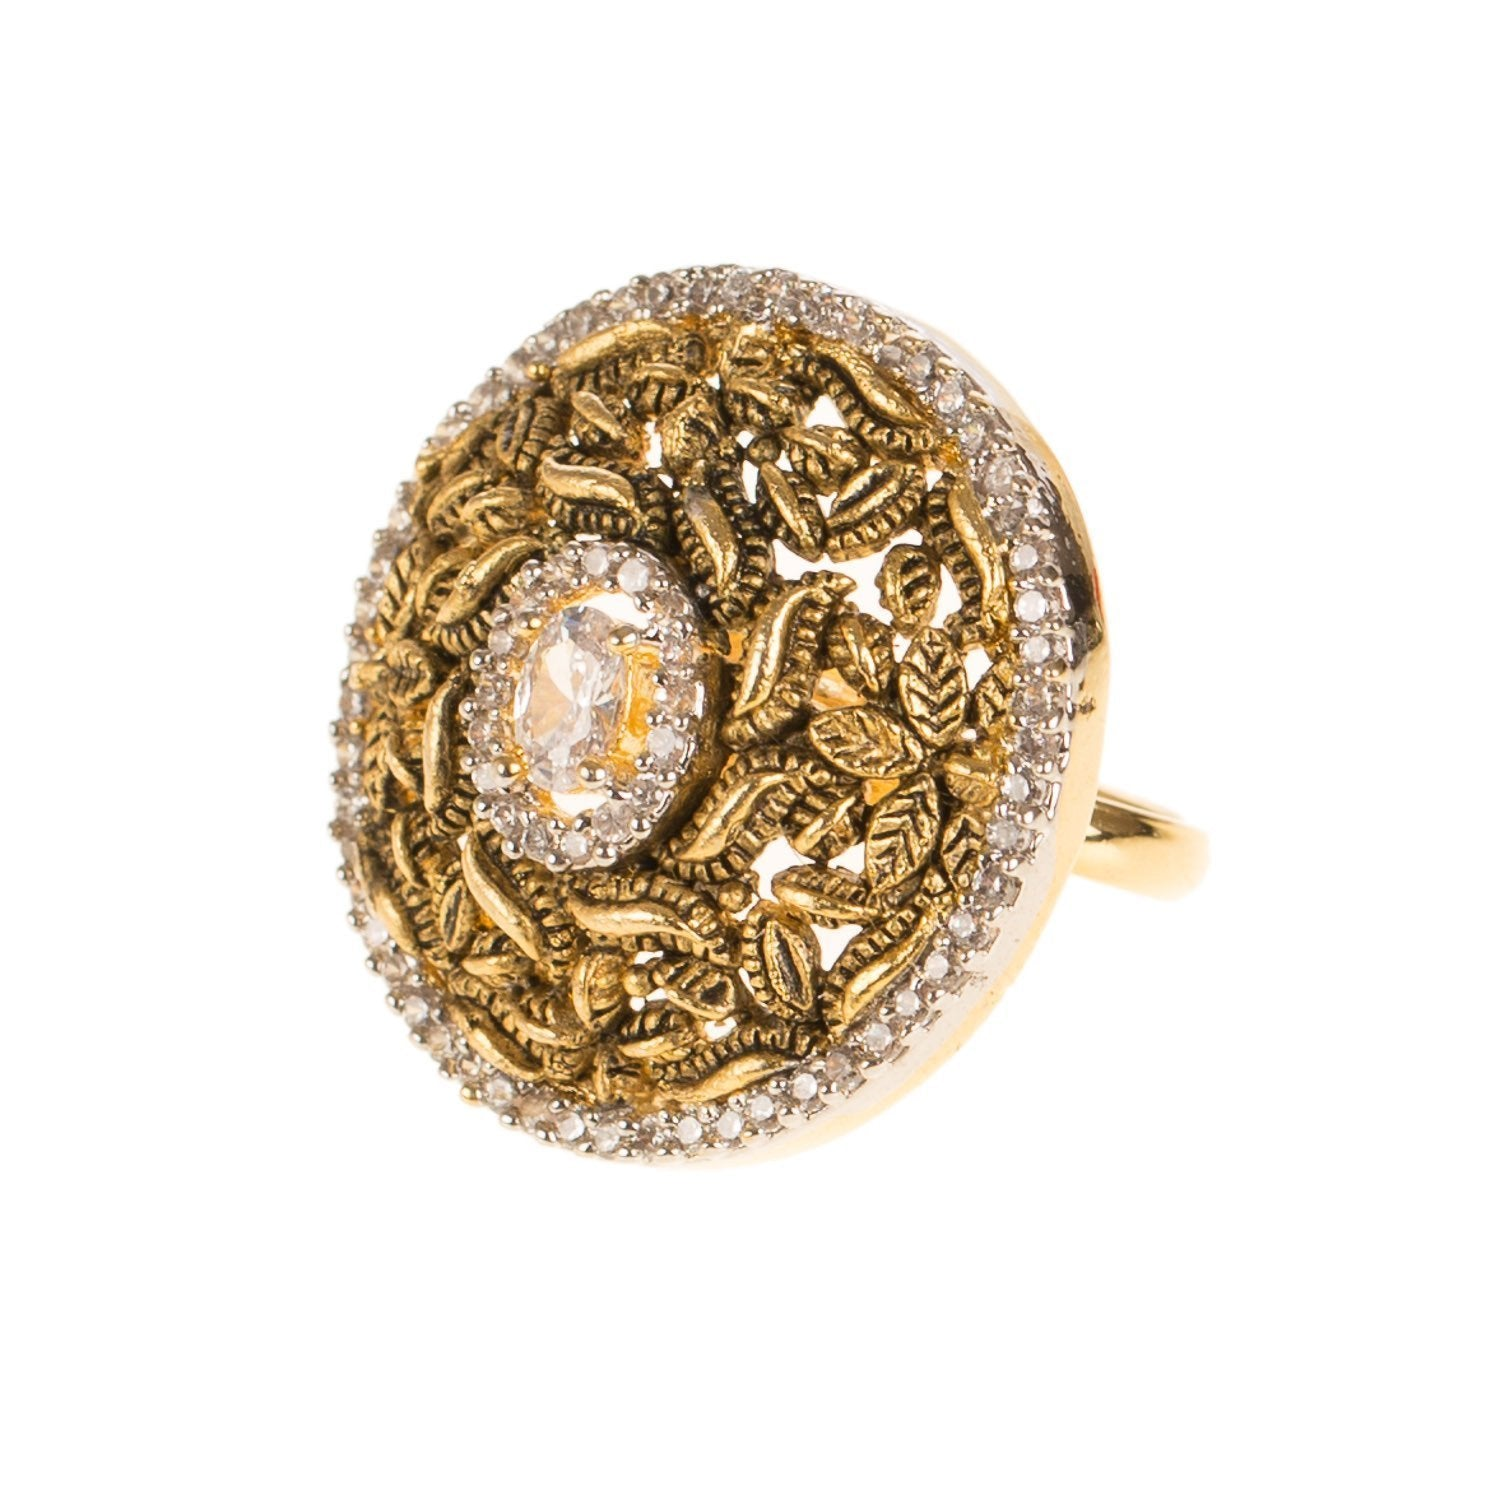 Dull Golden Fashion Adjustable Ring